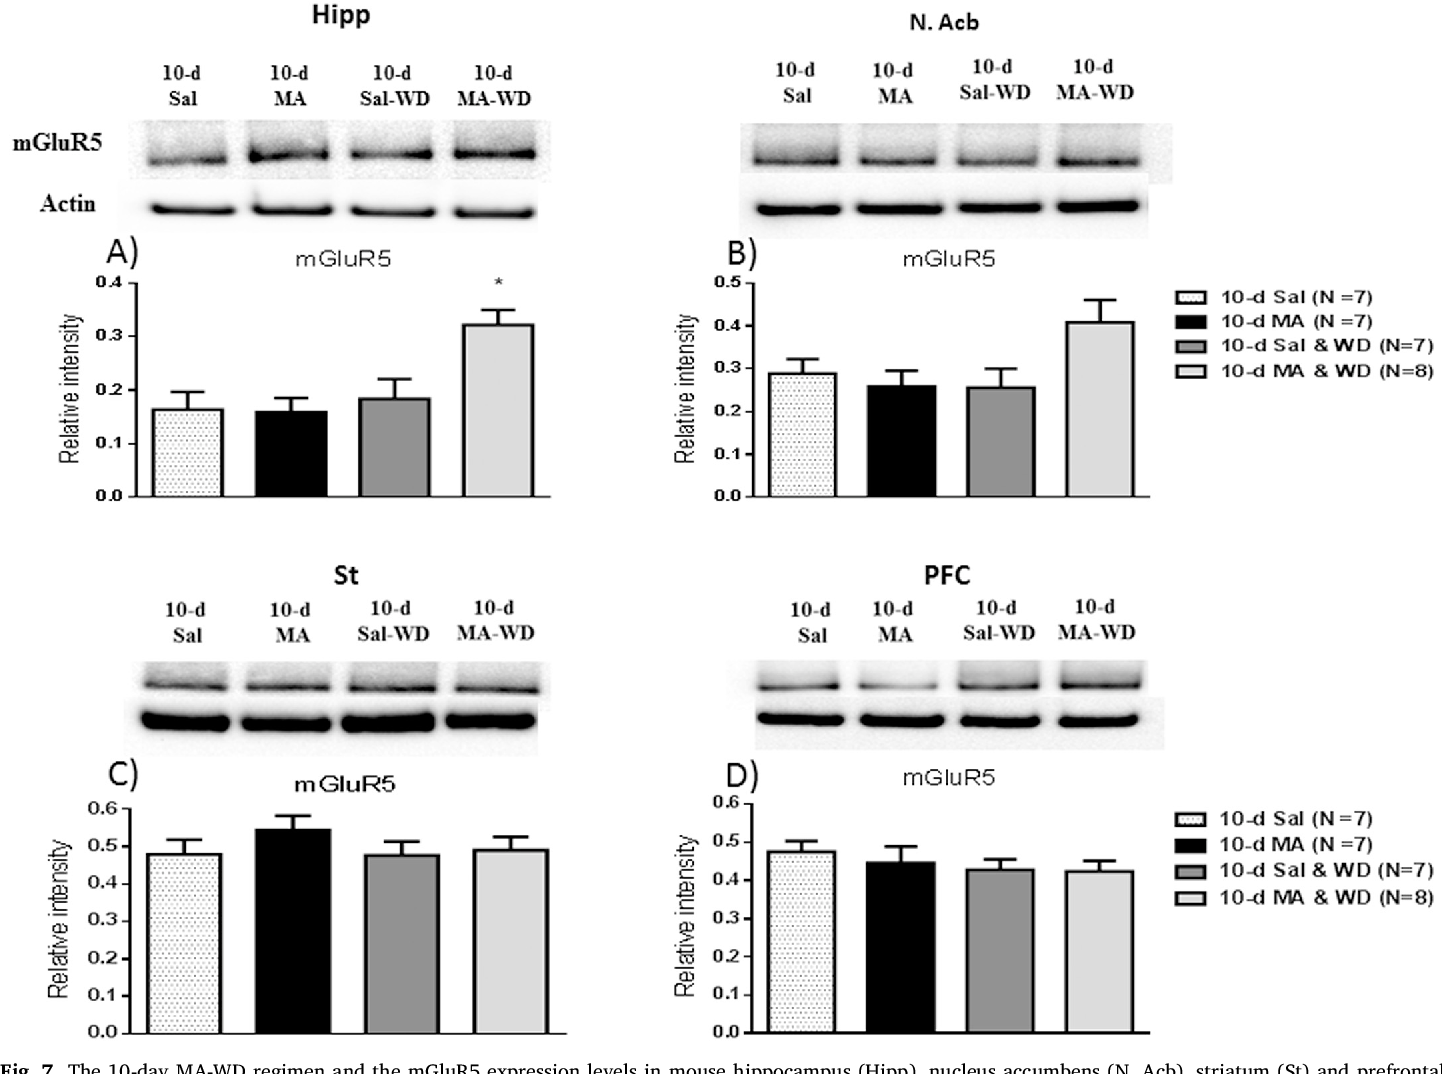 mGluR5 upregulation and the effects of repeated